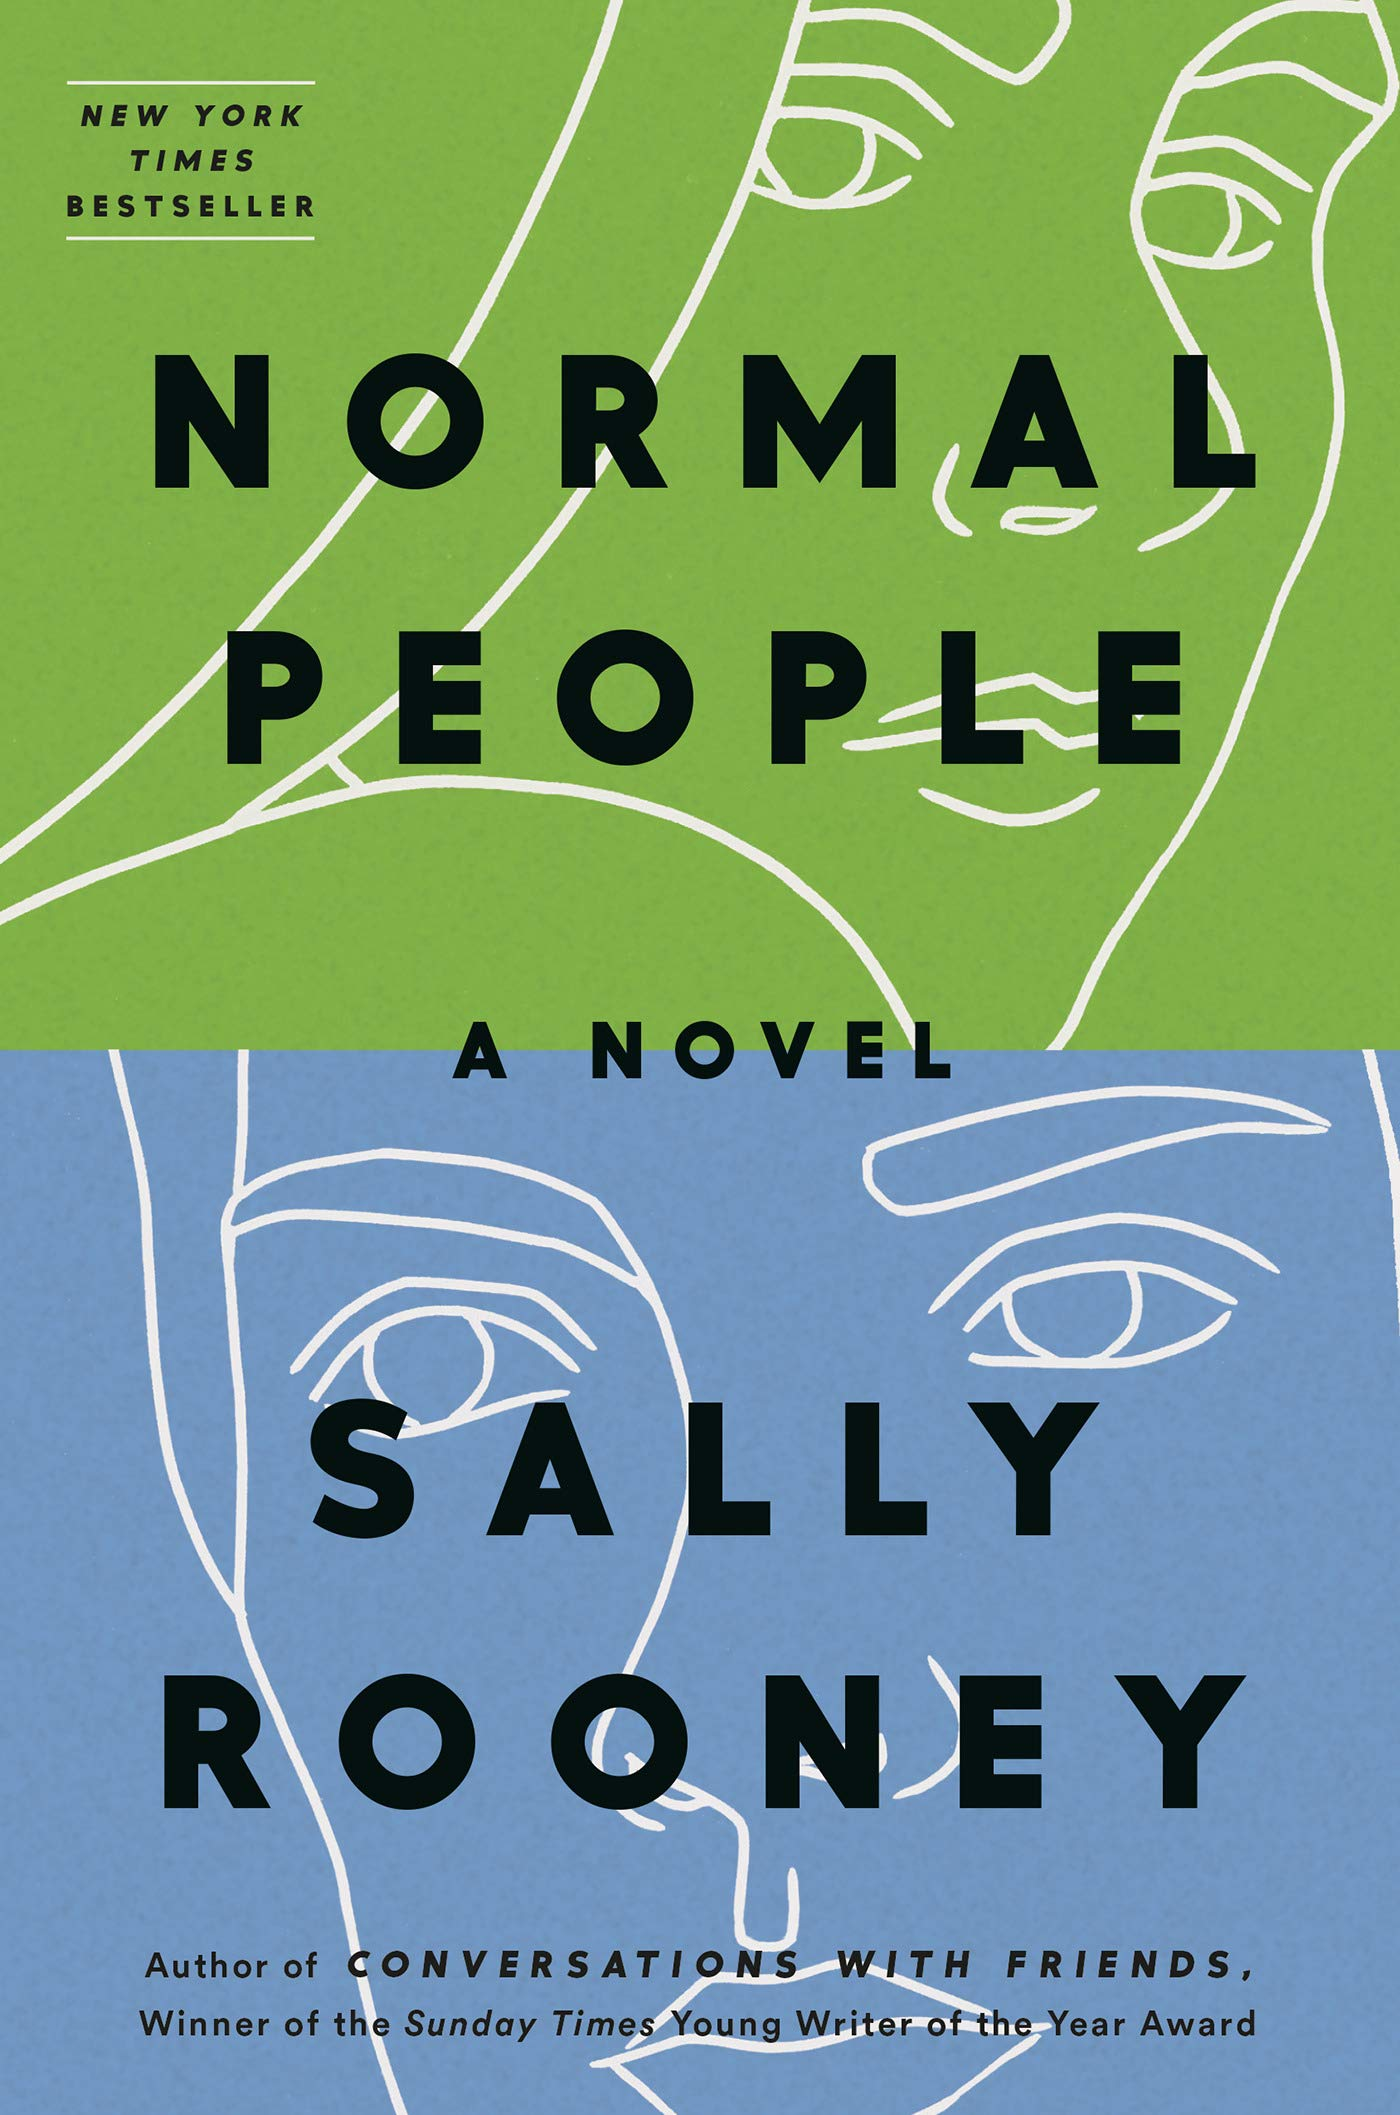 Image result for normal people book cover